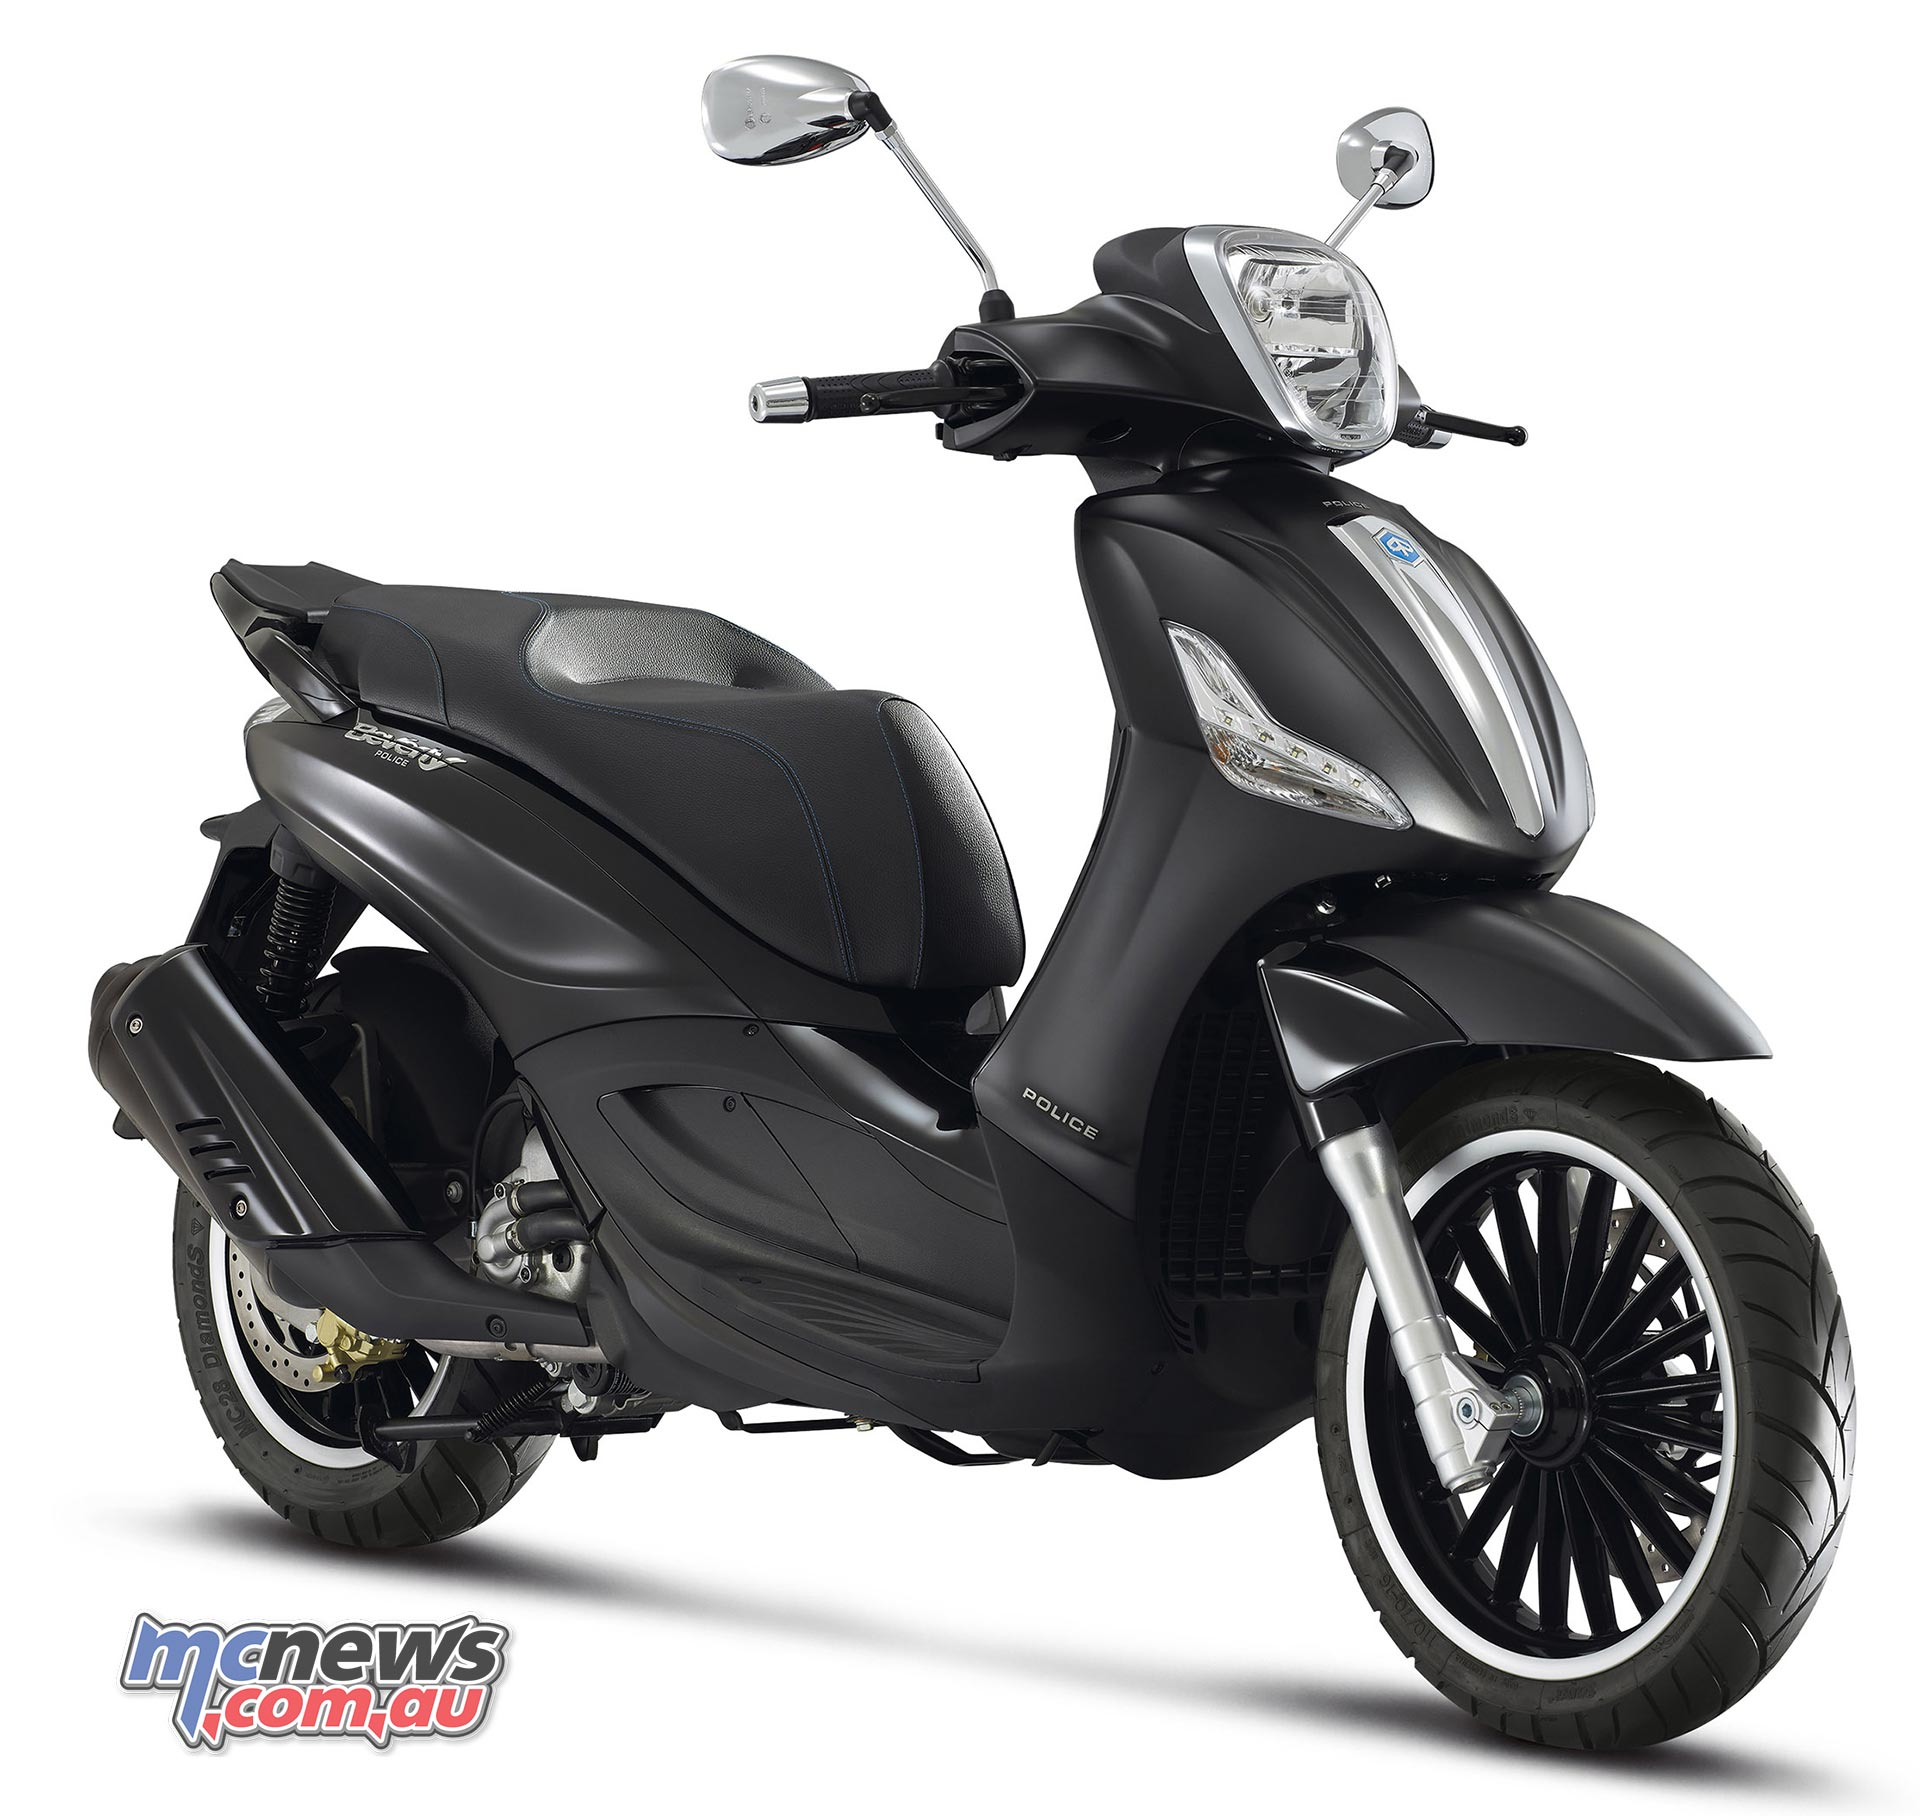 Piaggio Beverley By Police